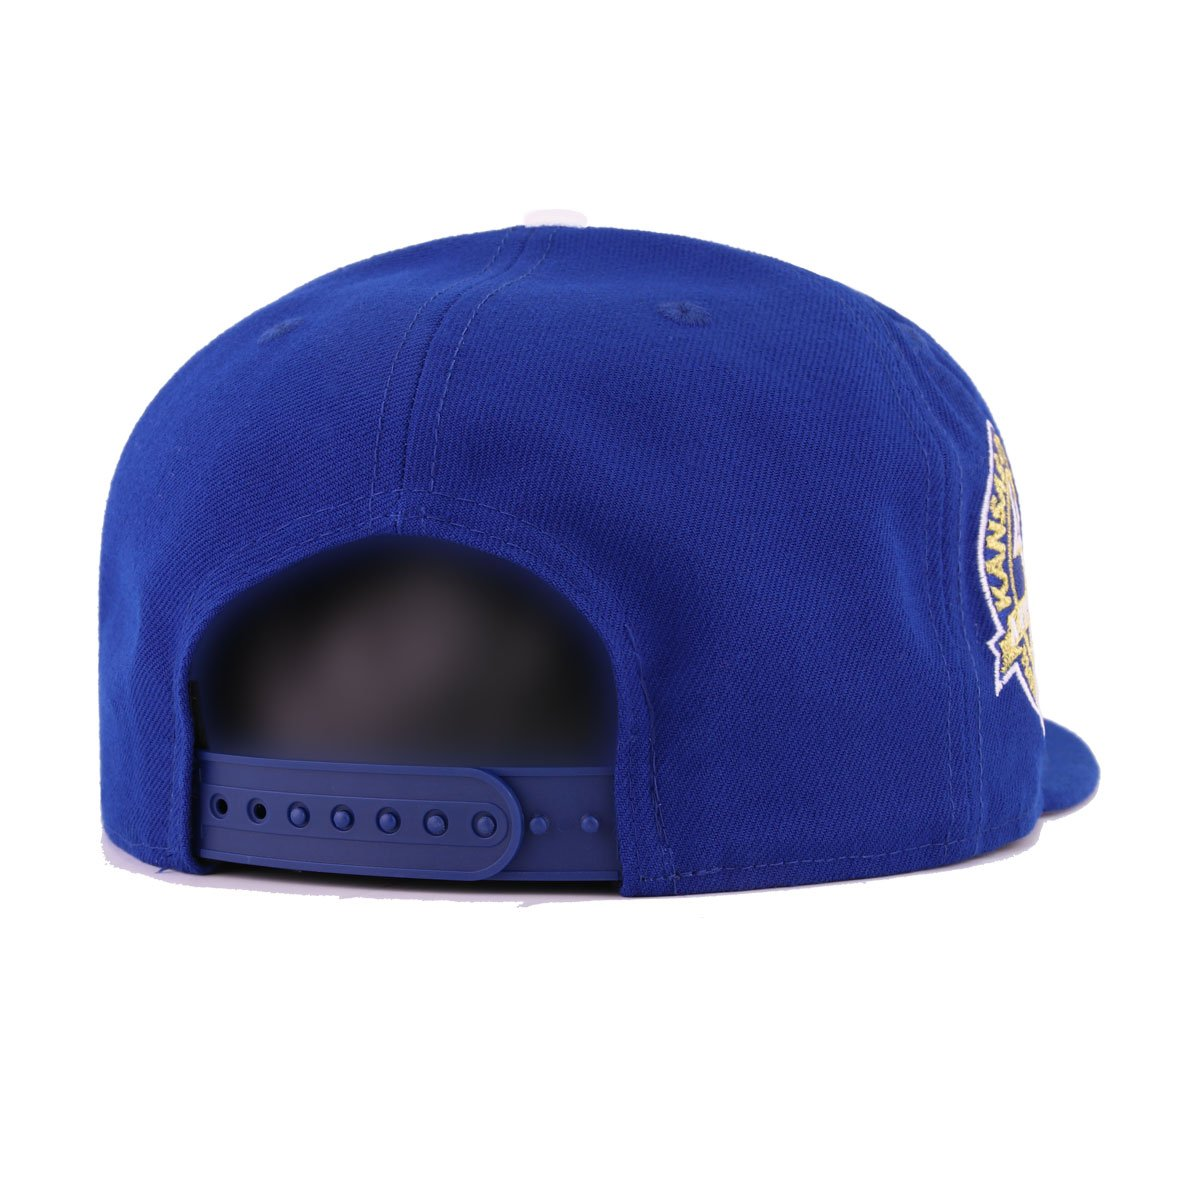 Kansas City Royals Light Royal Blue Metallic Gold Cooperstown New Era 9Fifty Snapback